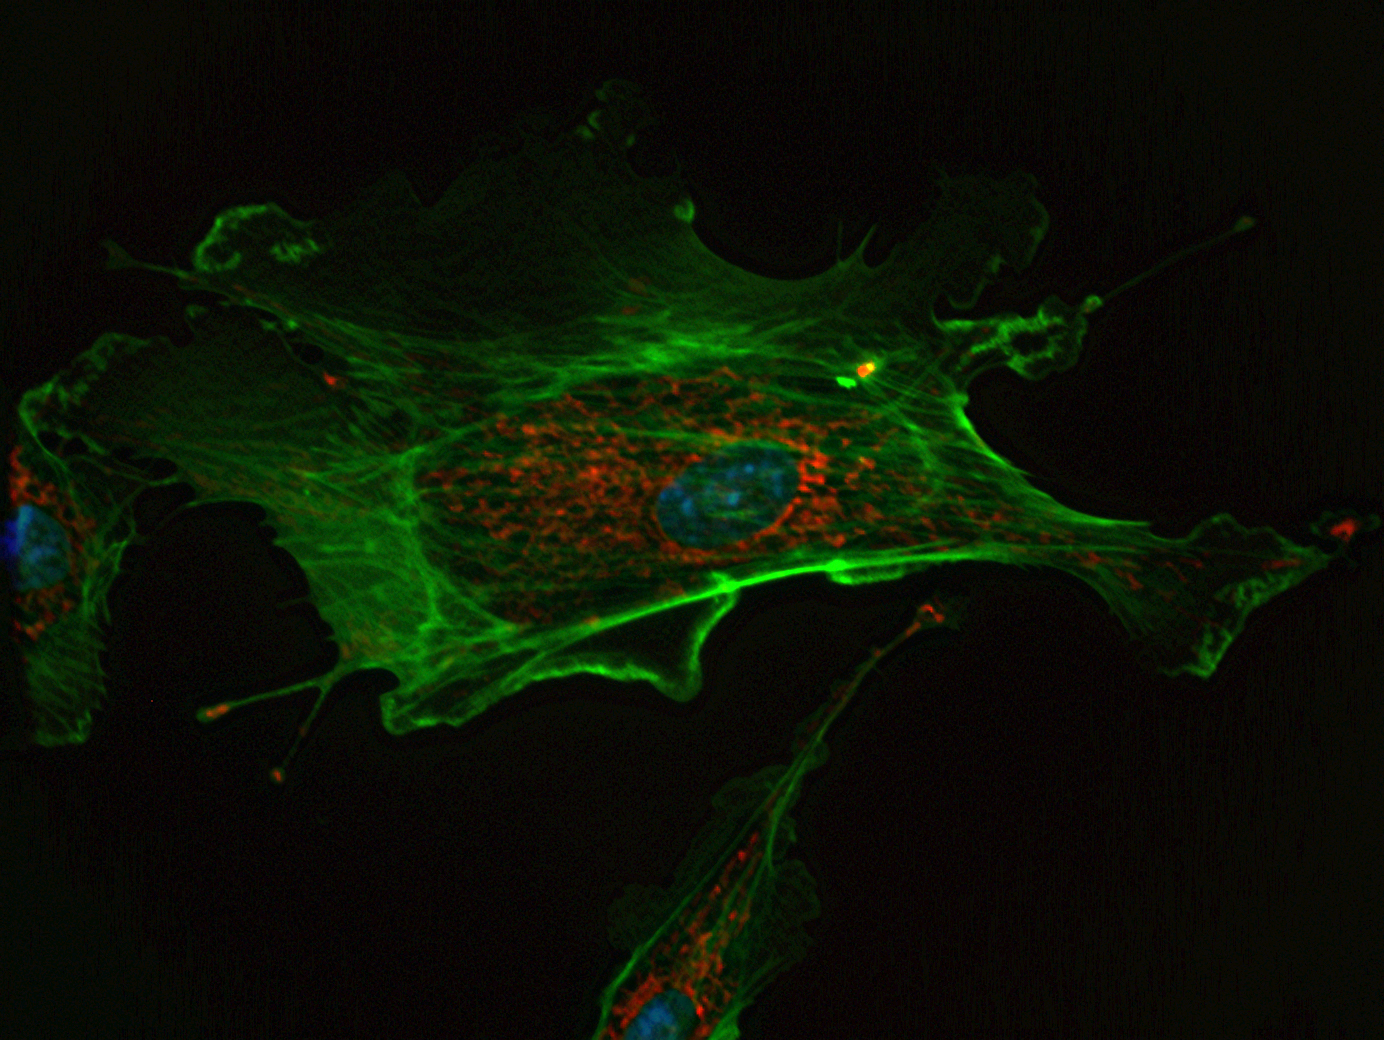 Staining Endothelial Cells of an Endothelial Cell